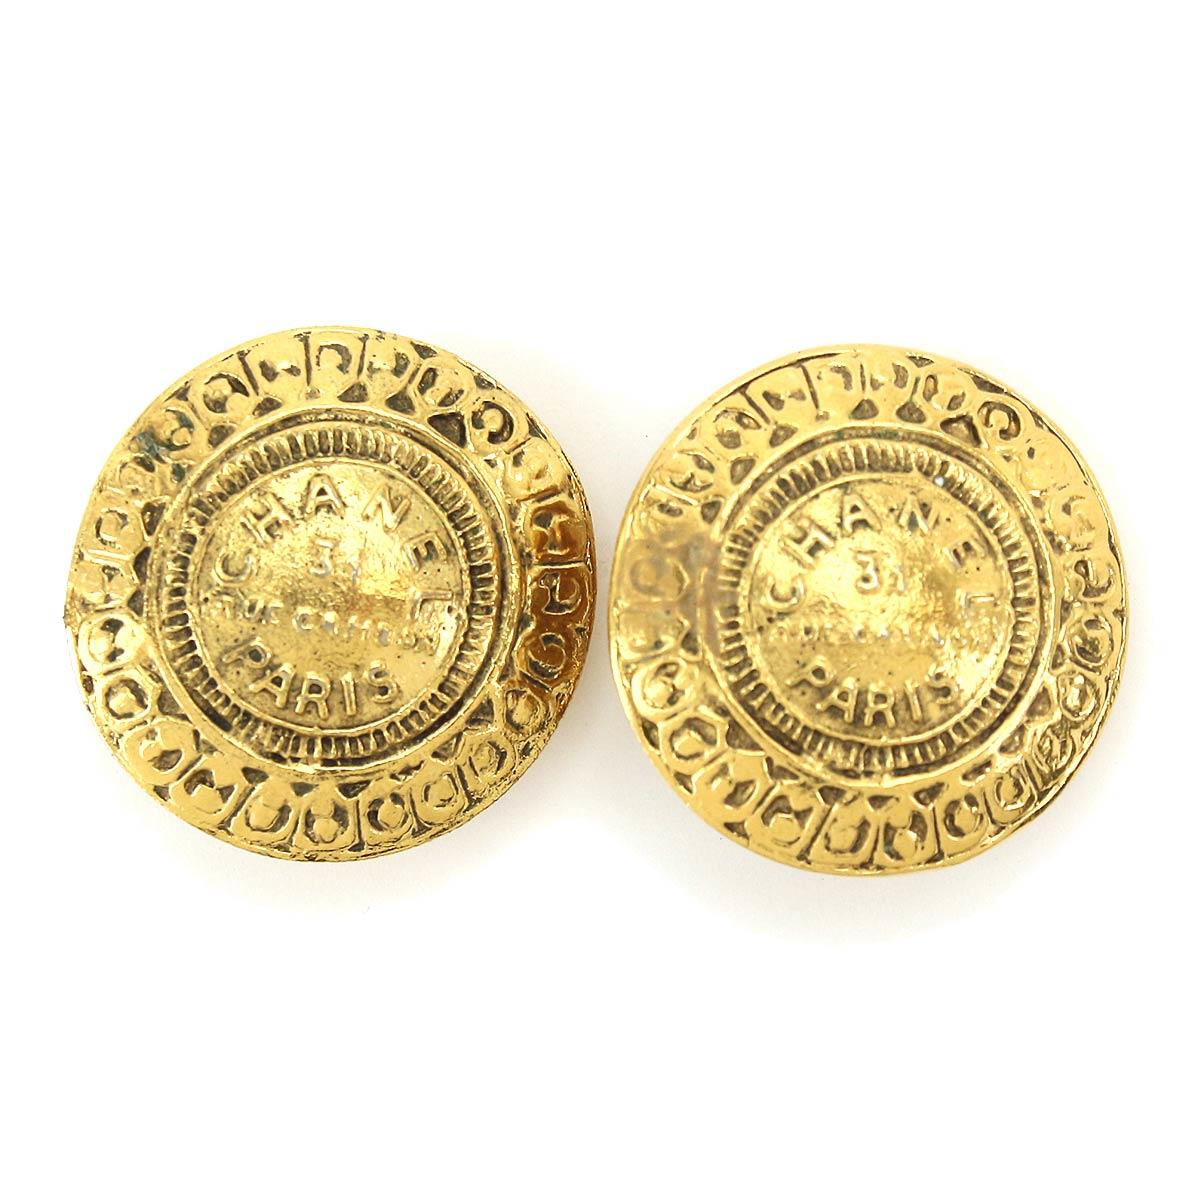 329c96ac3 Details about Auth CHANEL Round Earrings Gold Accessories 90064593